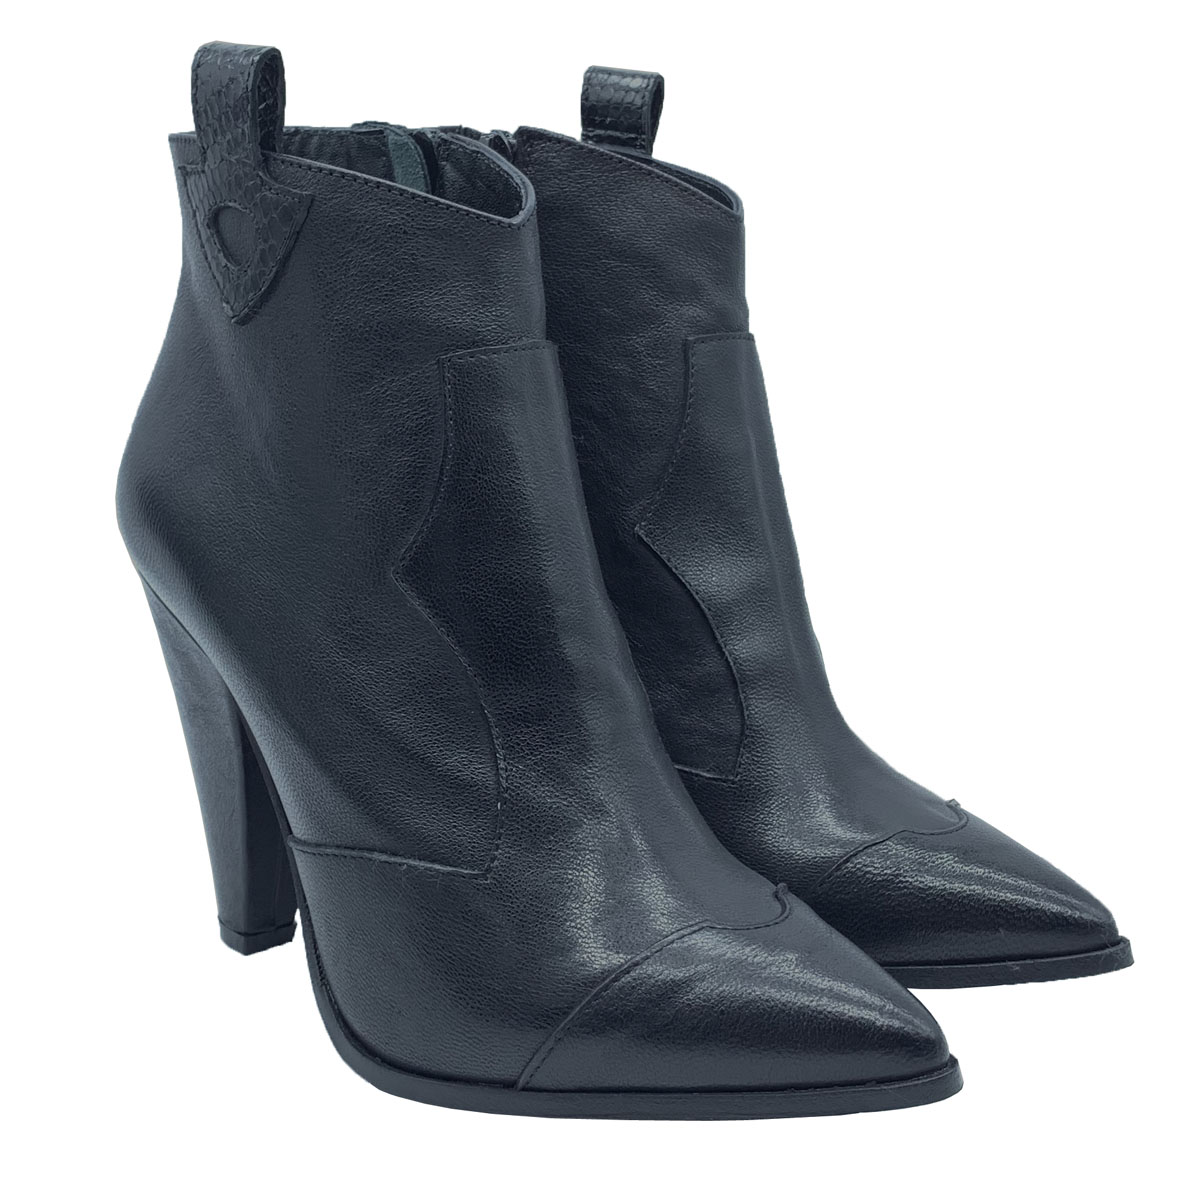 Women's Texan Ankle Boots Spatarella | Ankle Boots | 690CLNERO